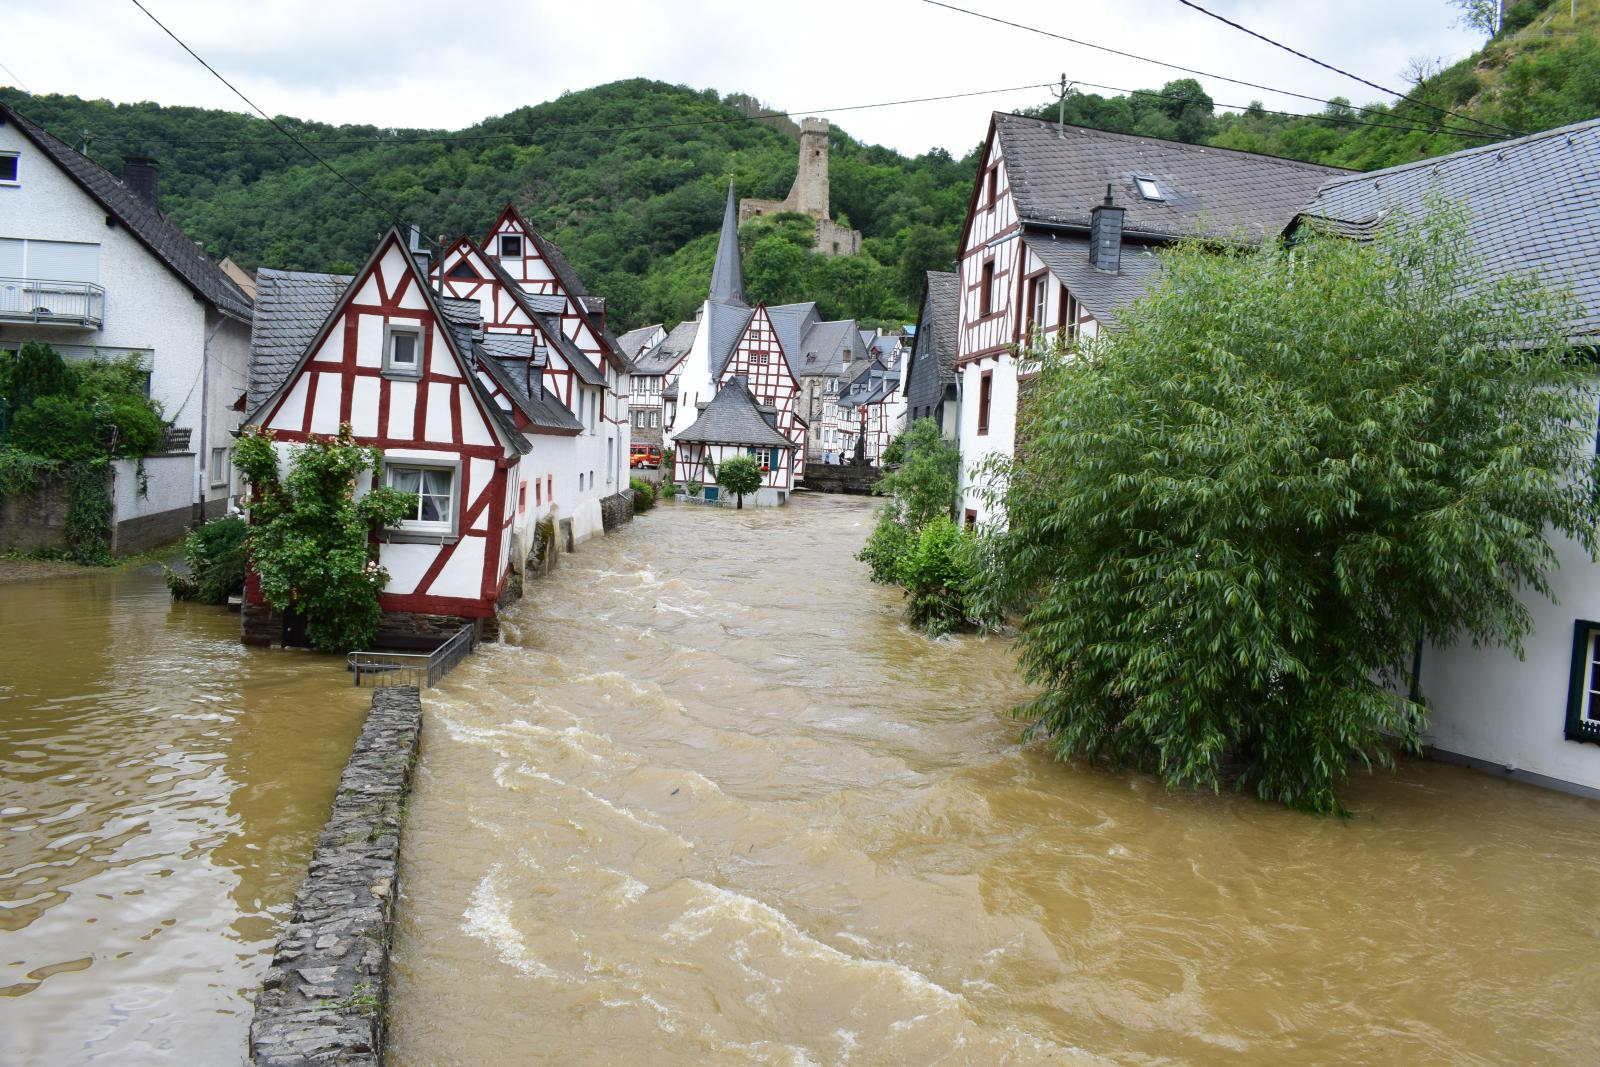 Europe floods July 2021: What caused them and why people were caught out